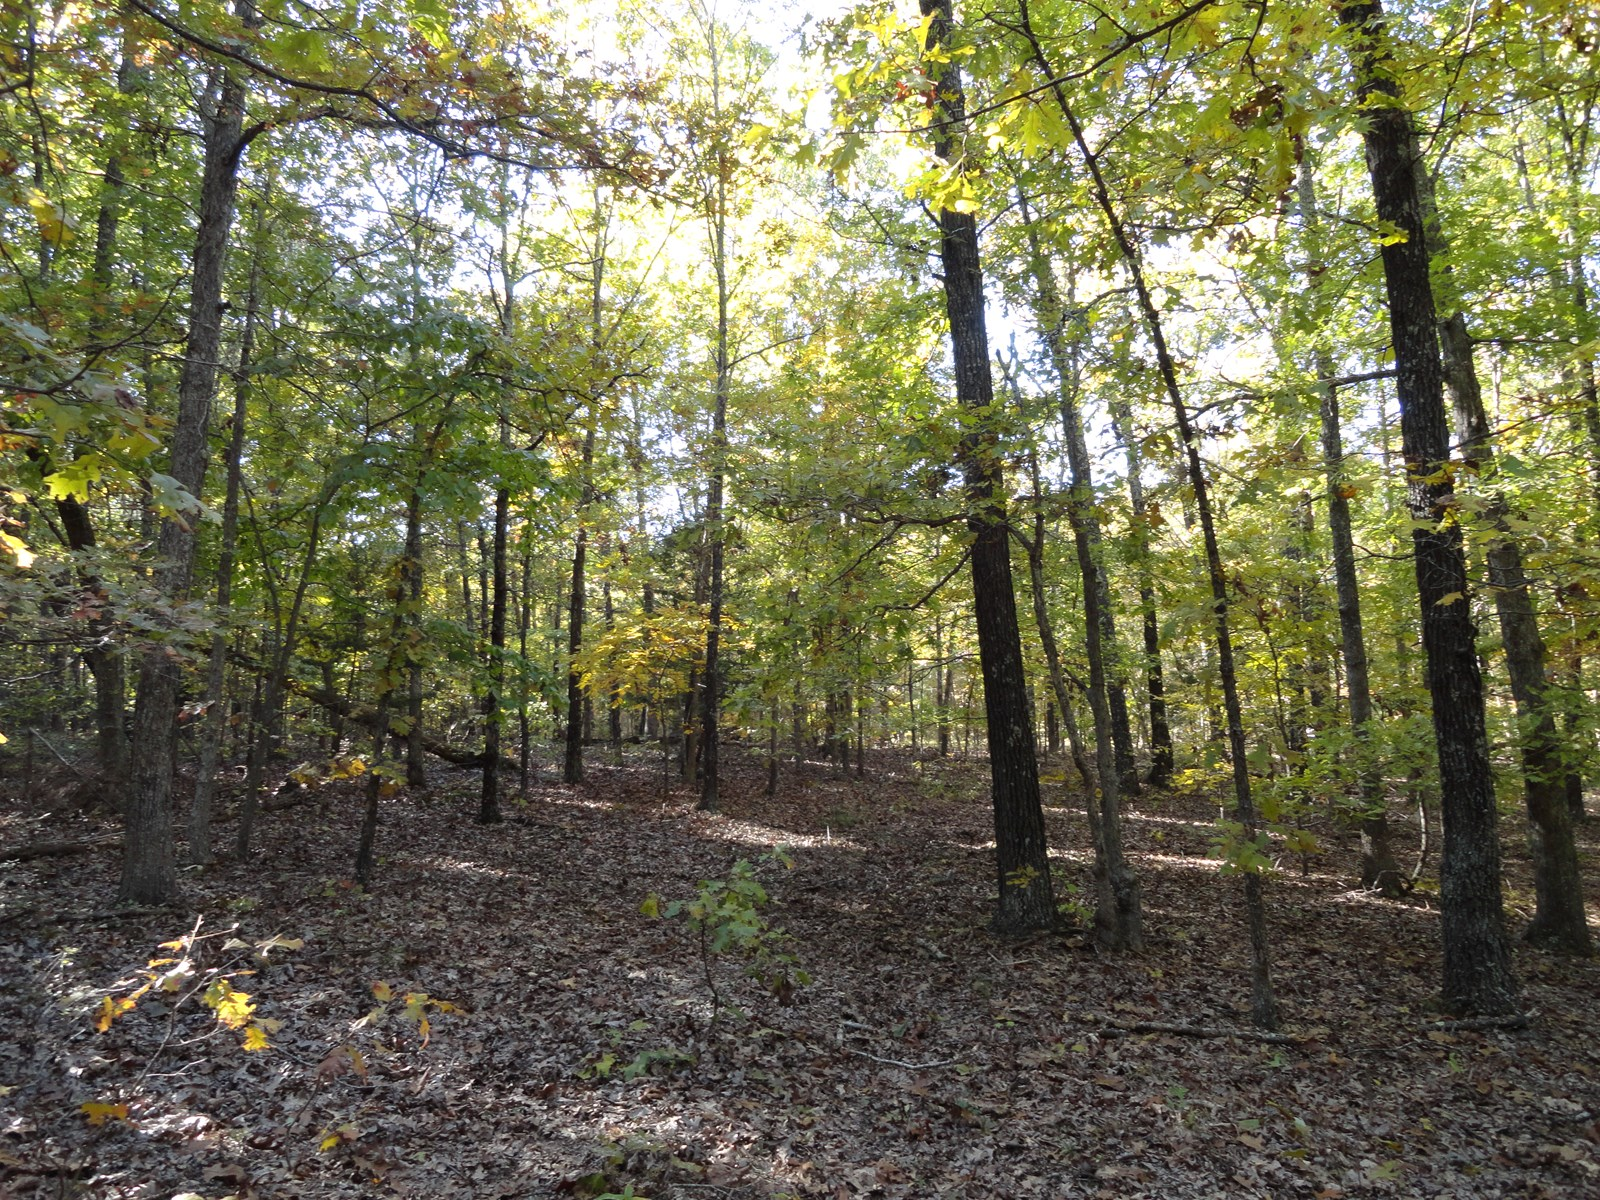 46.92 WOODED ACRES LOCATED JUST 7 MILES FROM SALEM, MISSOURI